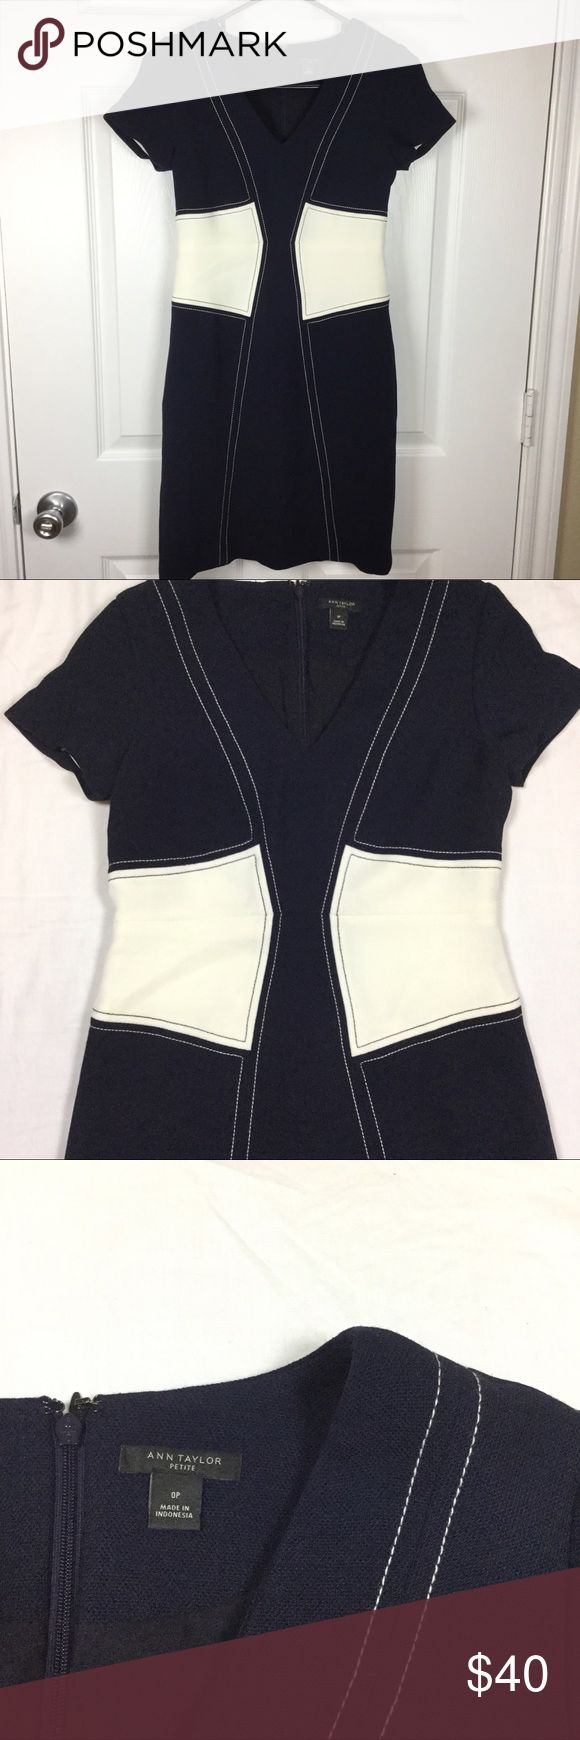 """Ann Taylor Color Block Dress Size 0 petite Curve accenting color block. With stitching detail. Polyester, Spandex, Rayon. Has some stretch. Lined. Navy Blue and White. When laid flat, bust measures 16 inches across armpit to armpit. Waist is 13.5 inches across. 35 inches long. Feel free to ask any questions! No trades. Offers welcome through """"offer"""" button. 15% discount on bundles. (A) Ann Taylor Dresses"""